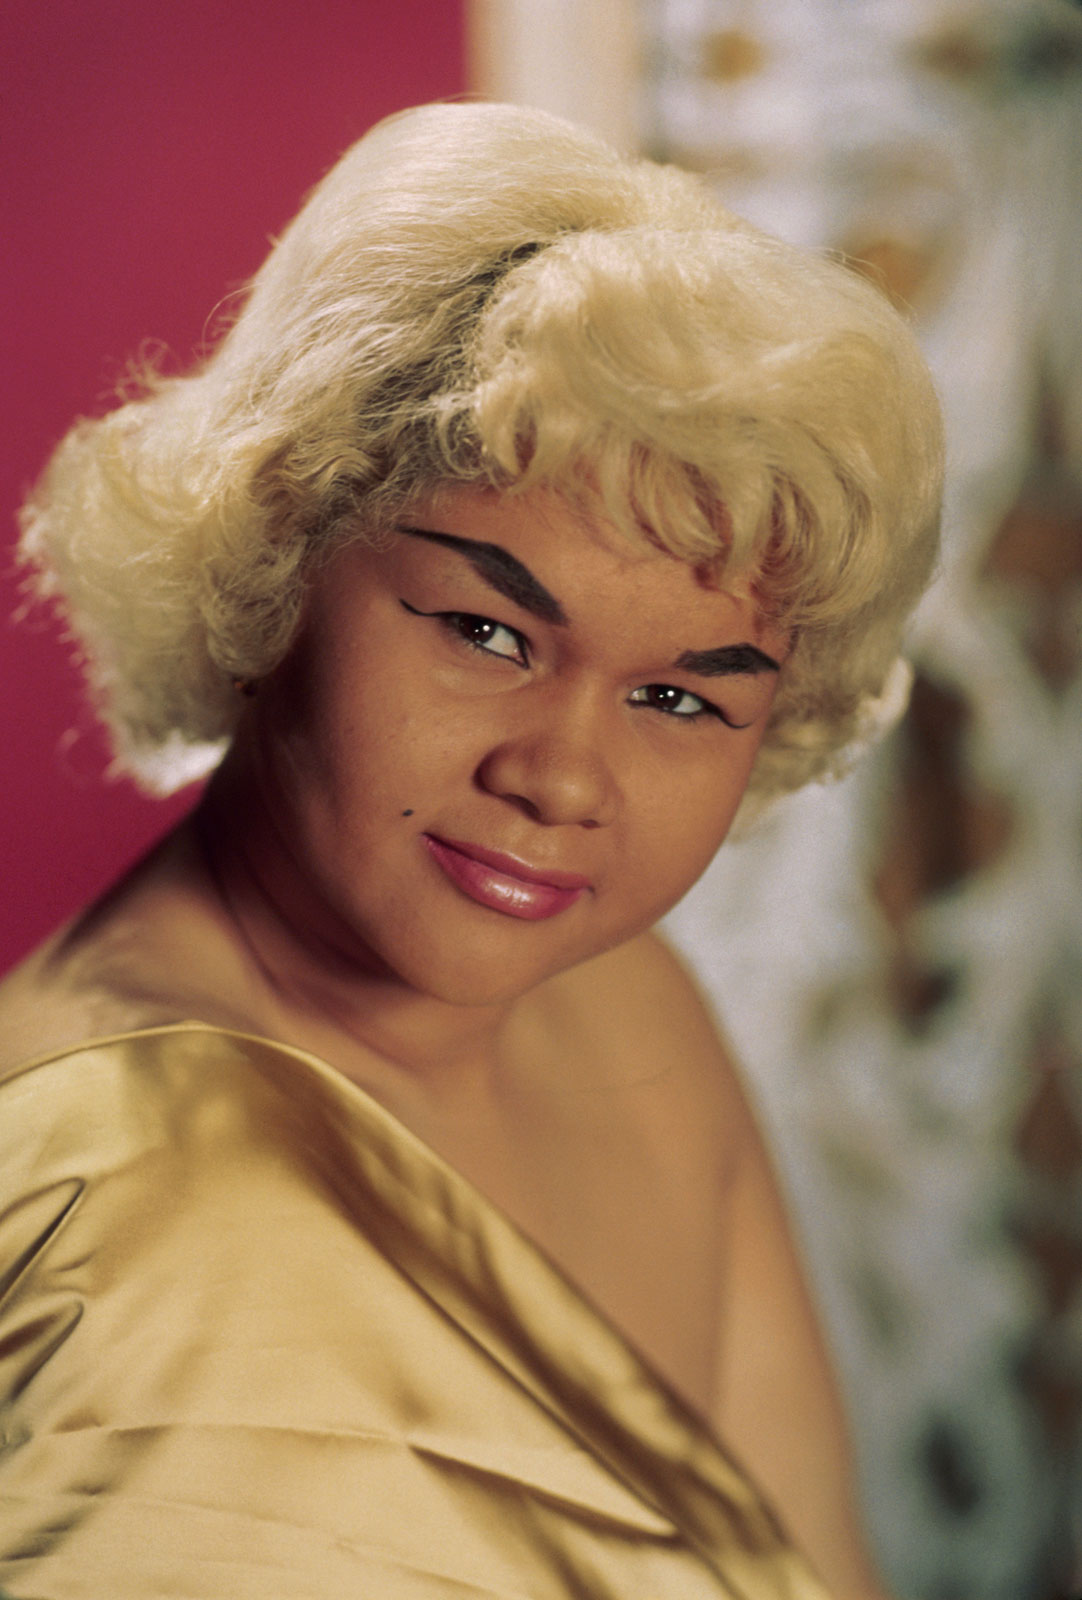 Etta James 1938-2012 / The Superslice